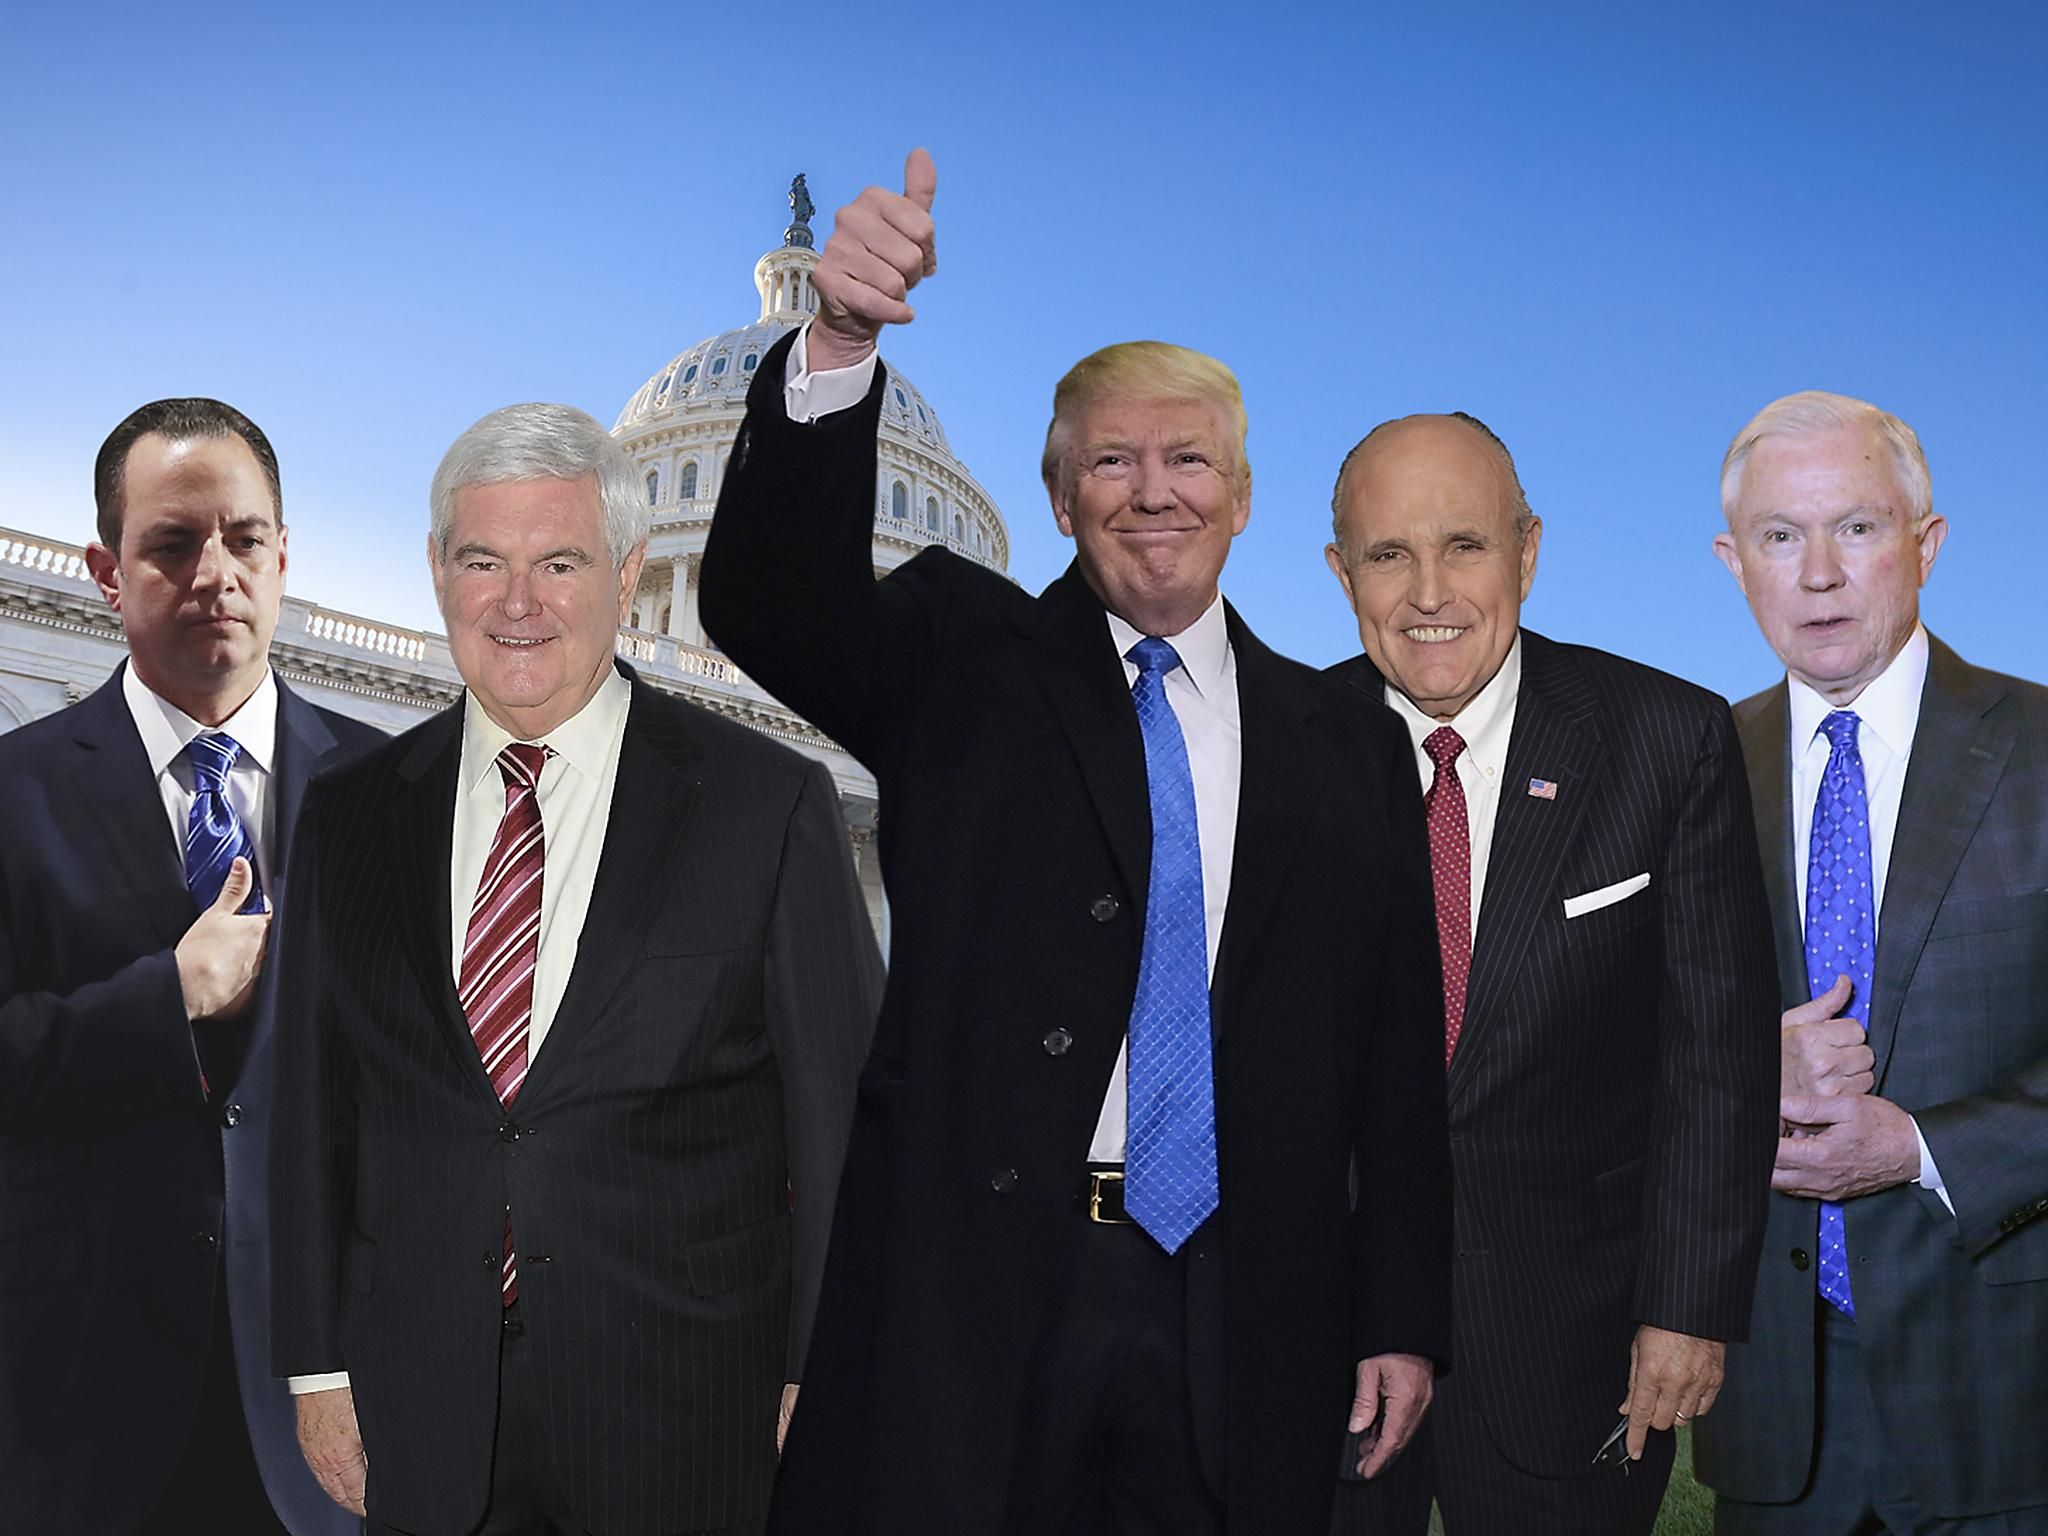 Trump's Cabinet: The candidates for the new President's top team ...